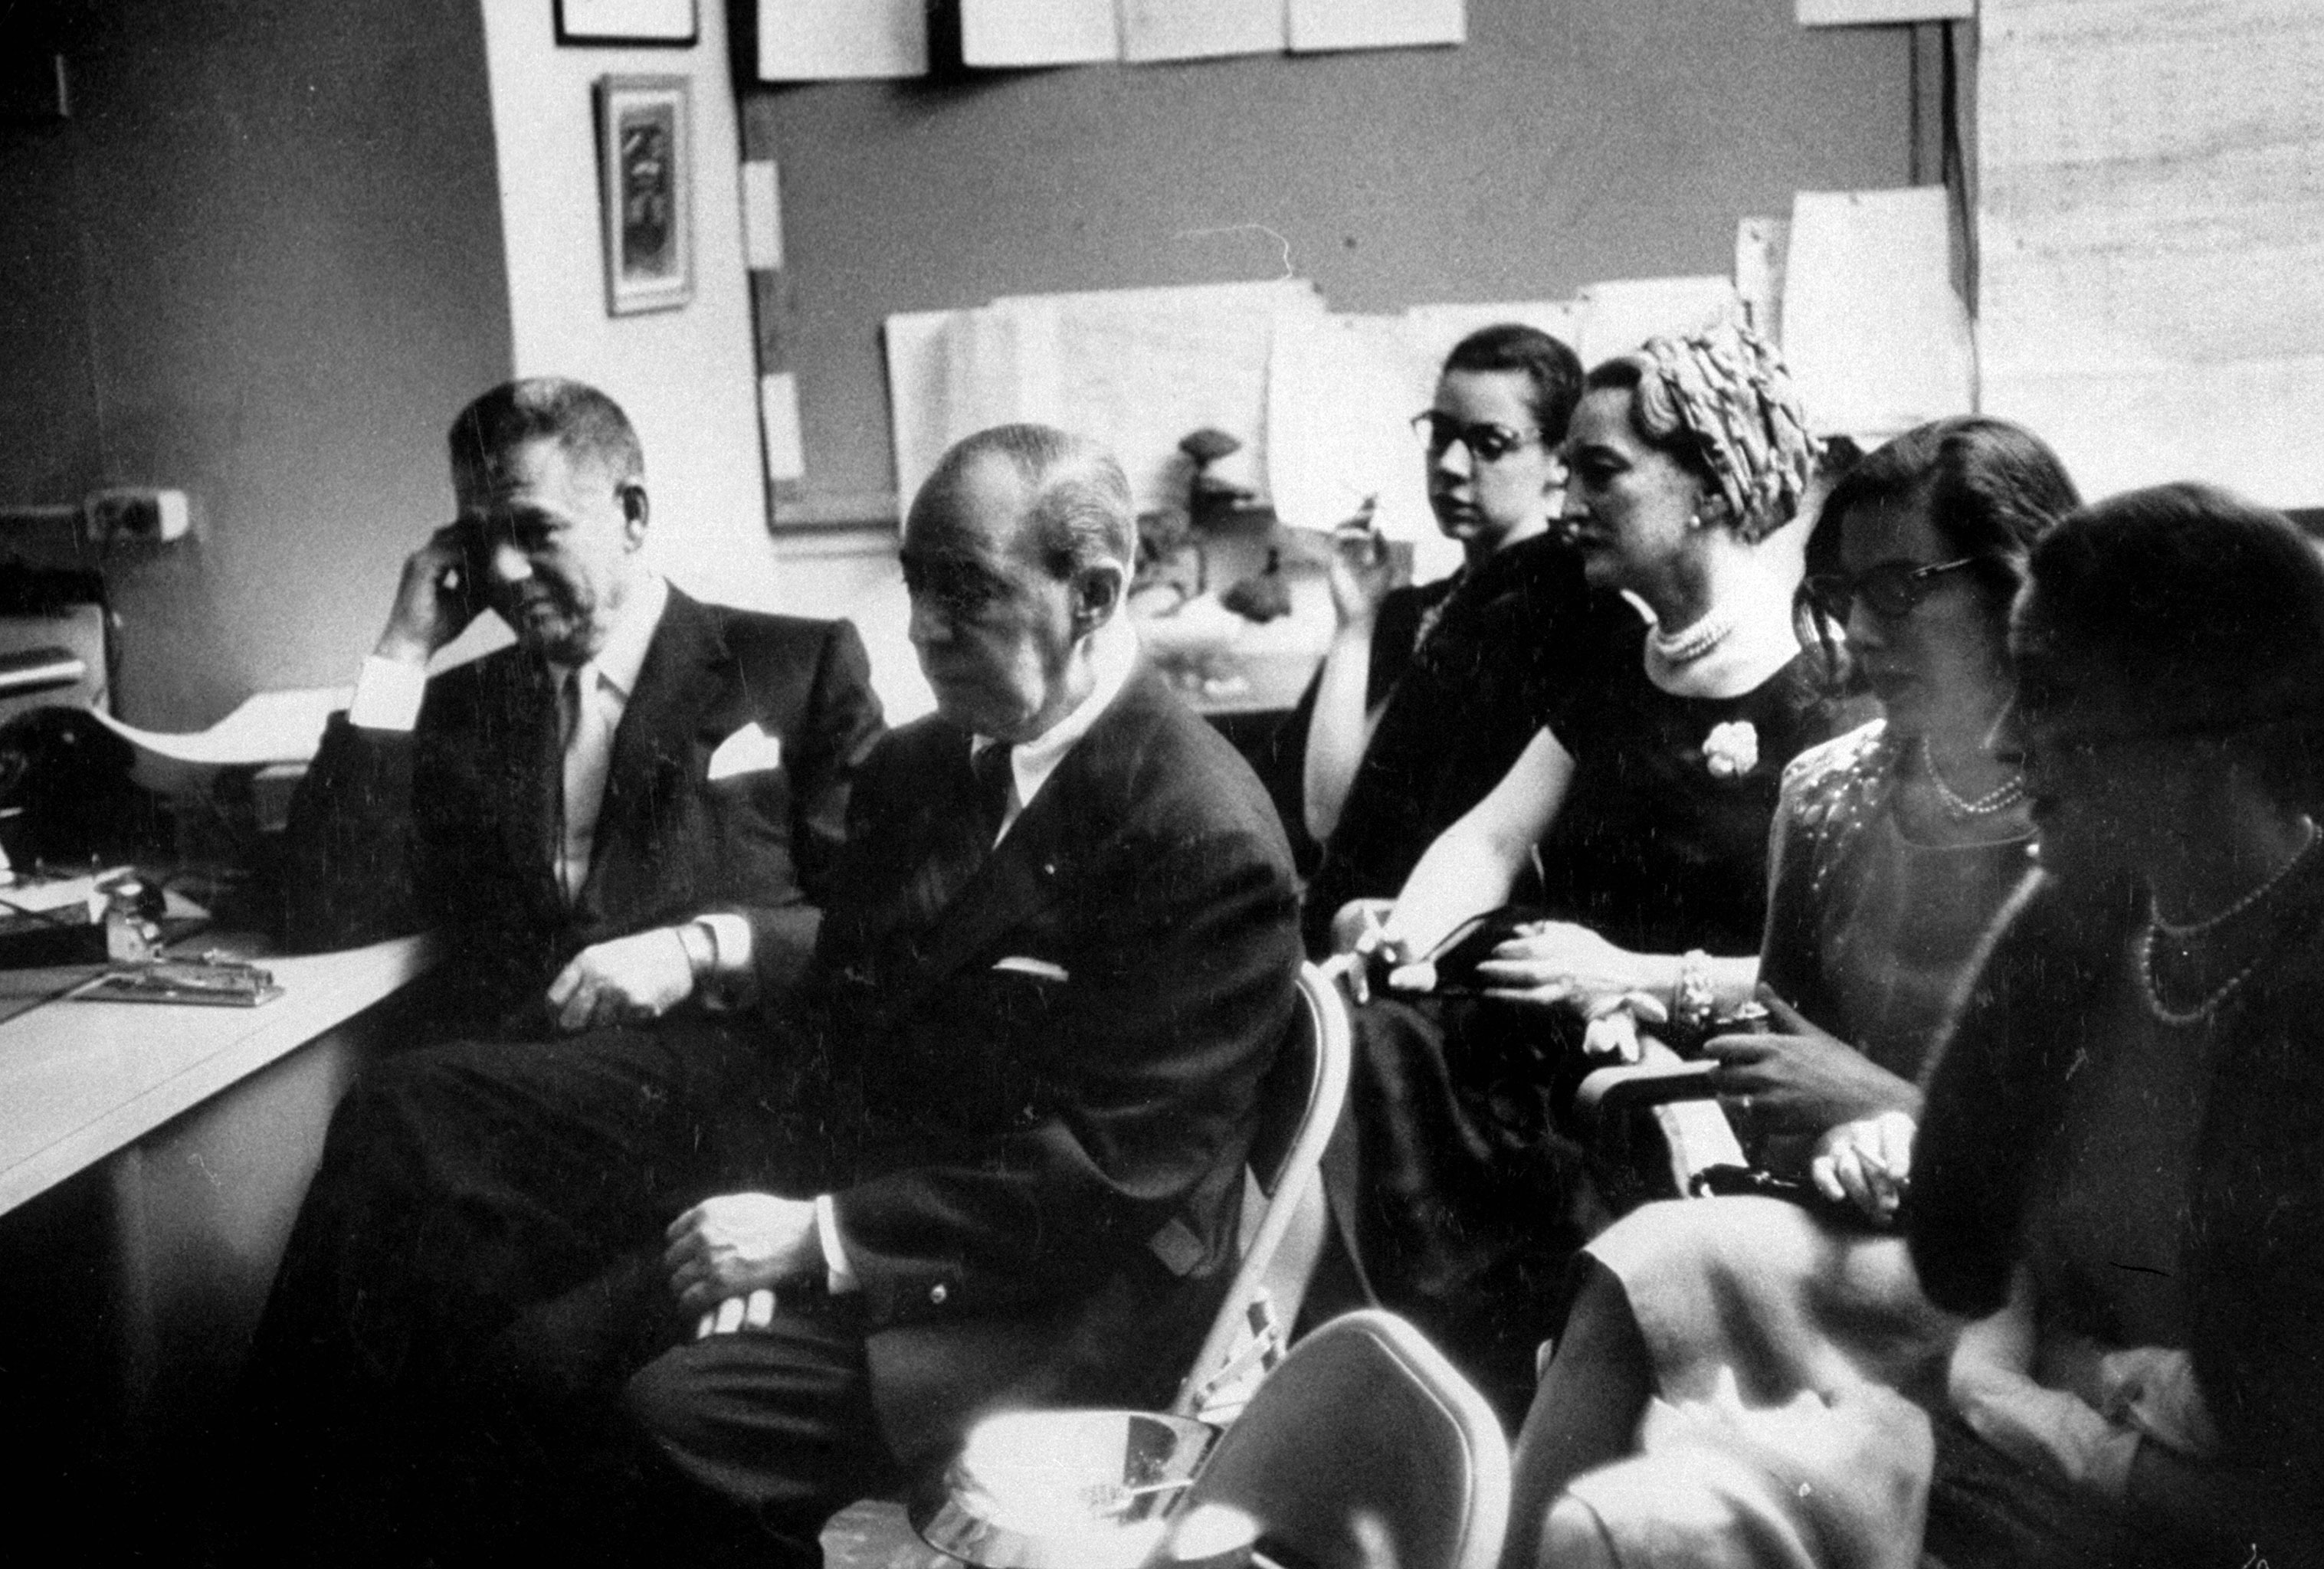 <b>Caption from LIFE.</b> Audience of authors, Oscar Hammerstein II (left) and Richard Rodgers, watch the show unfold.